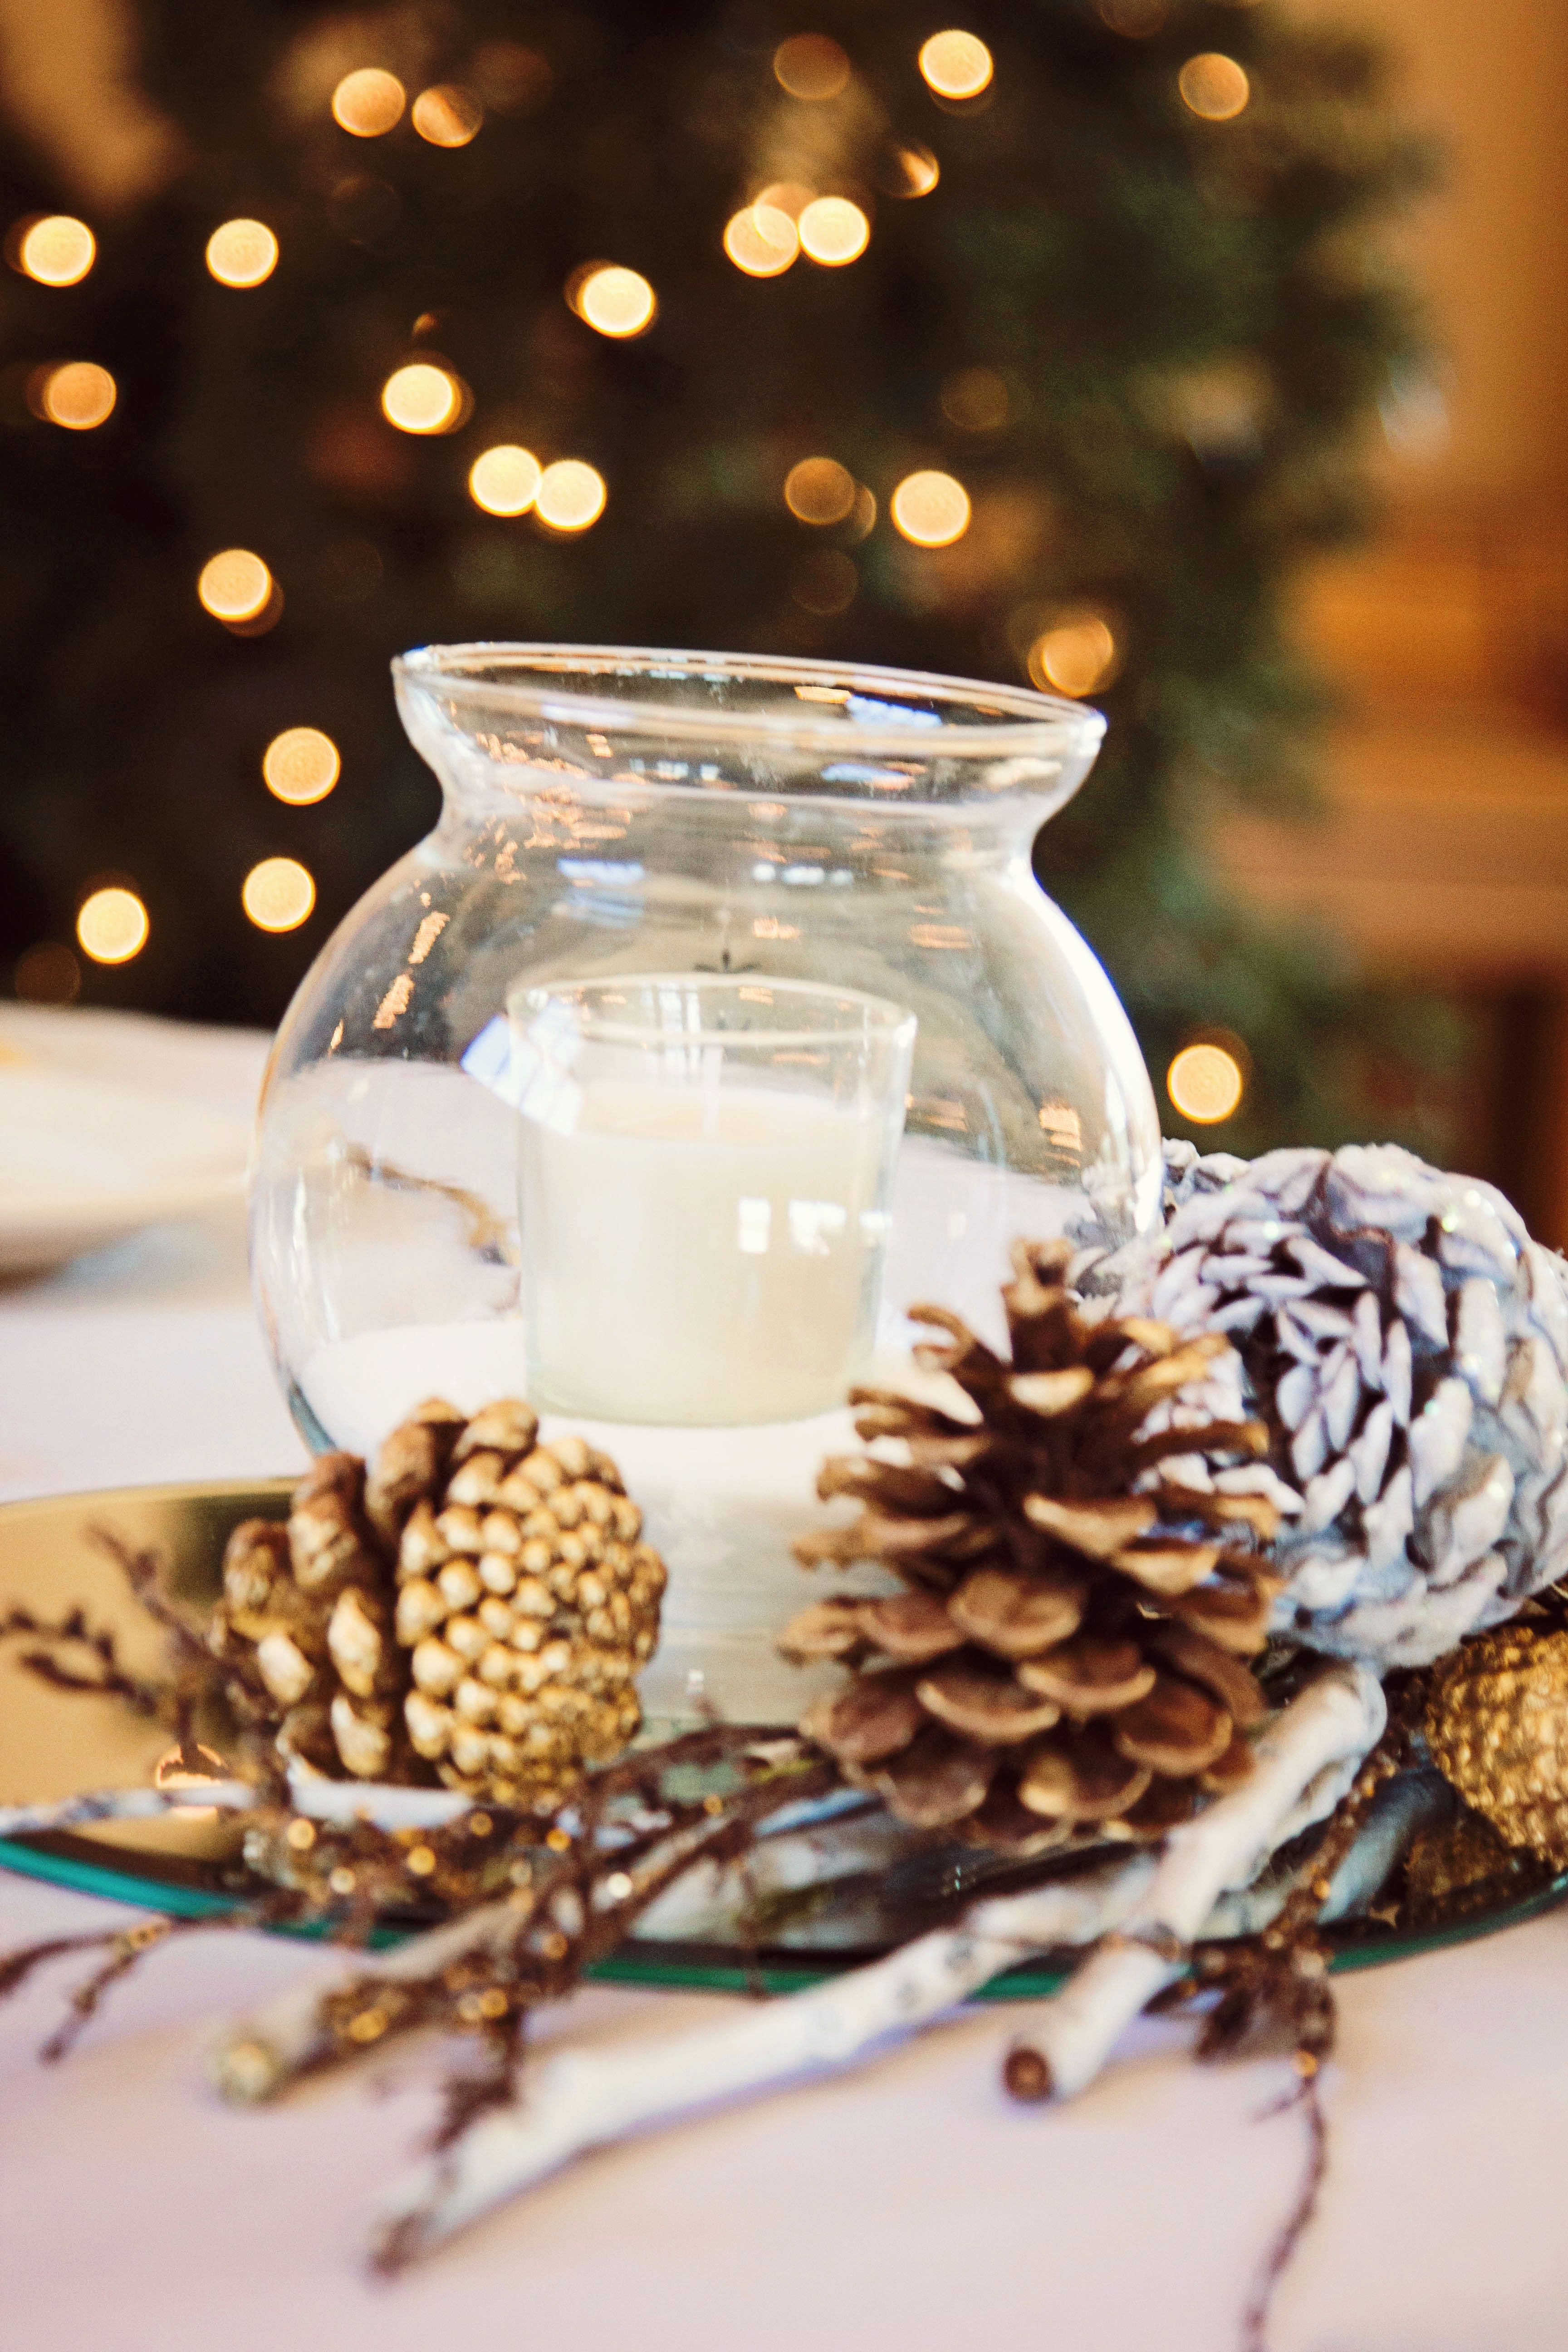 Winter Wedding Centerpieces Winter Decorations Spray Paint Pine Cones Use Salt To Look Like Snow Winter Wedding Centerpieces